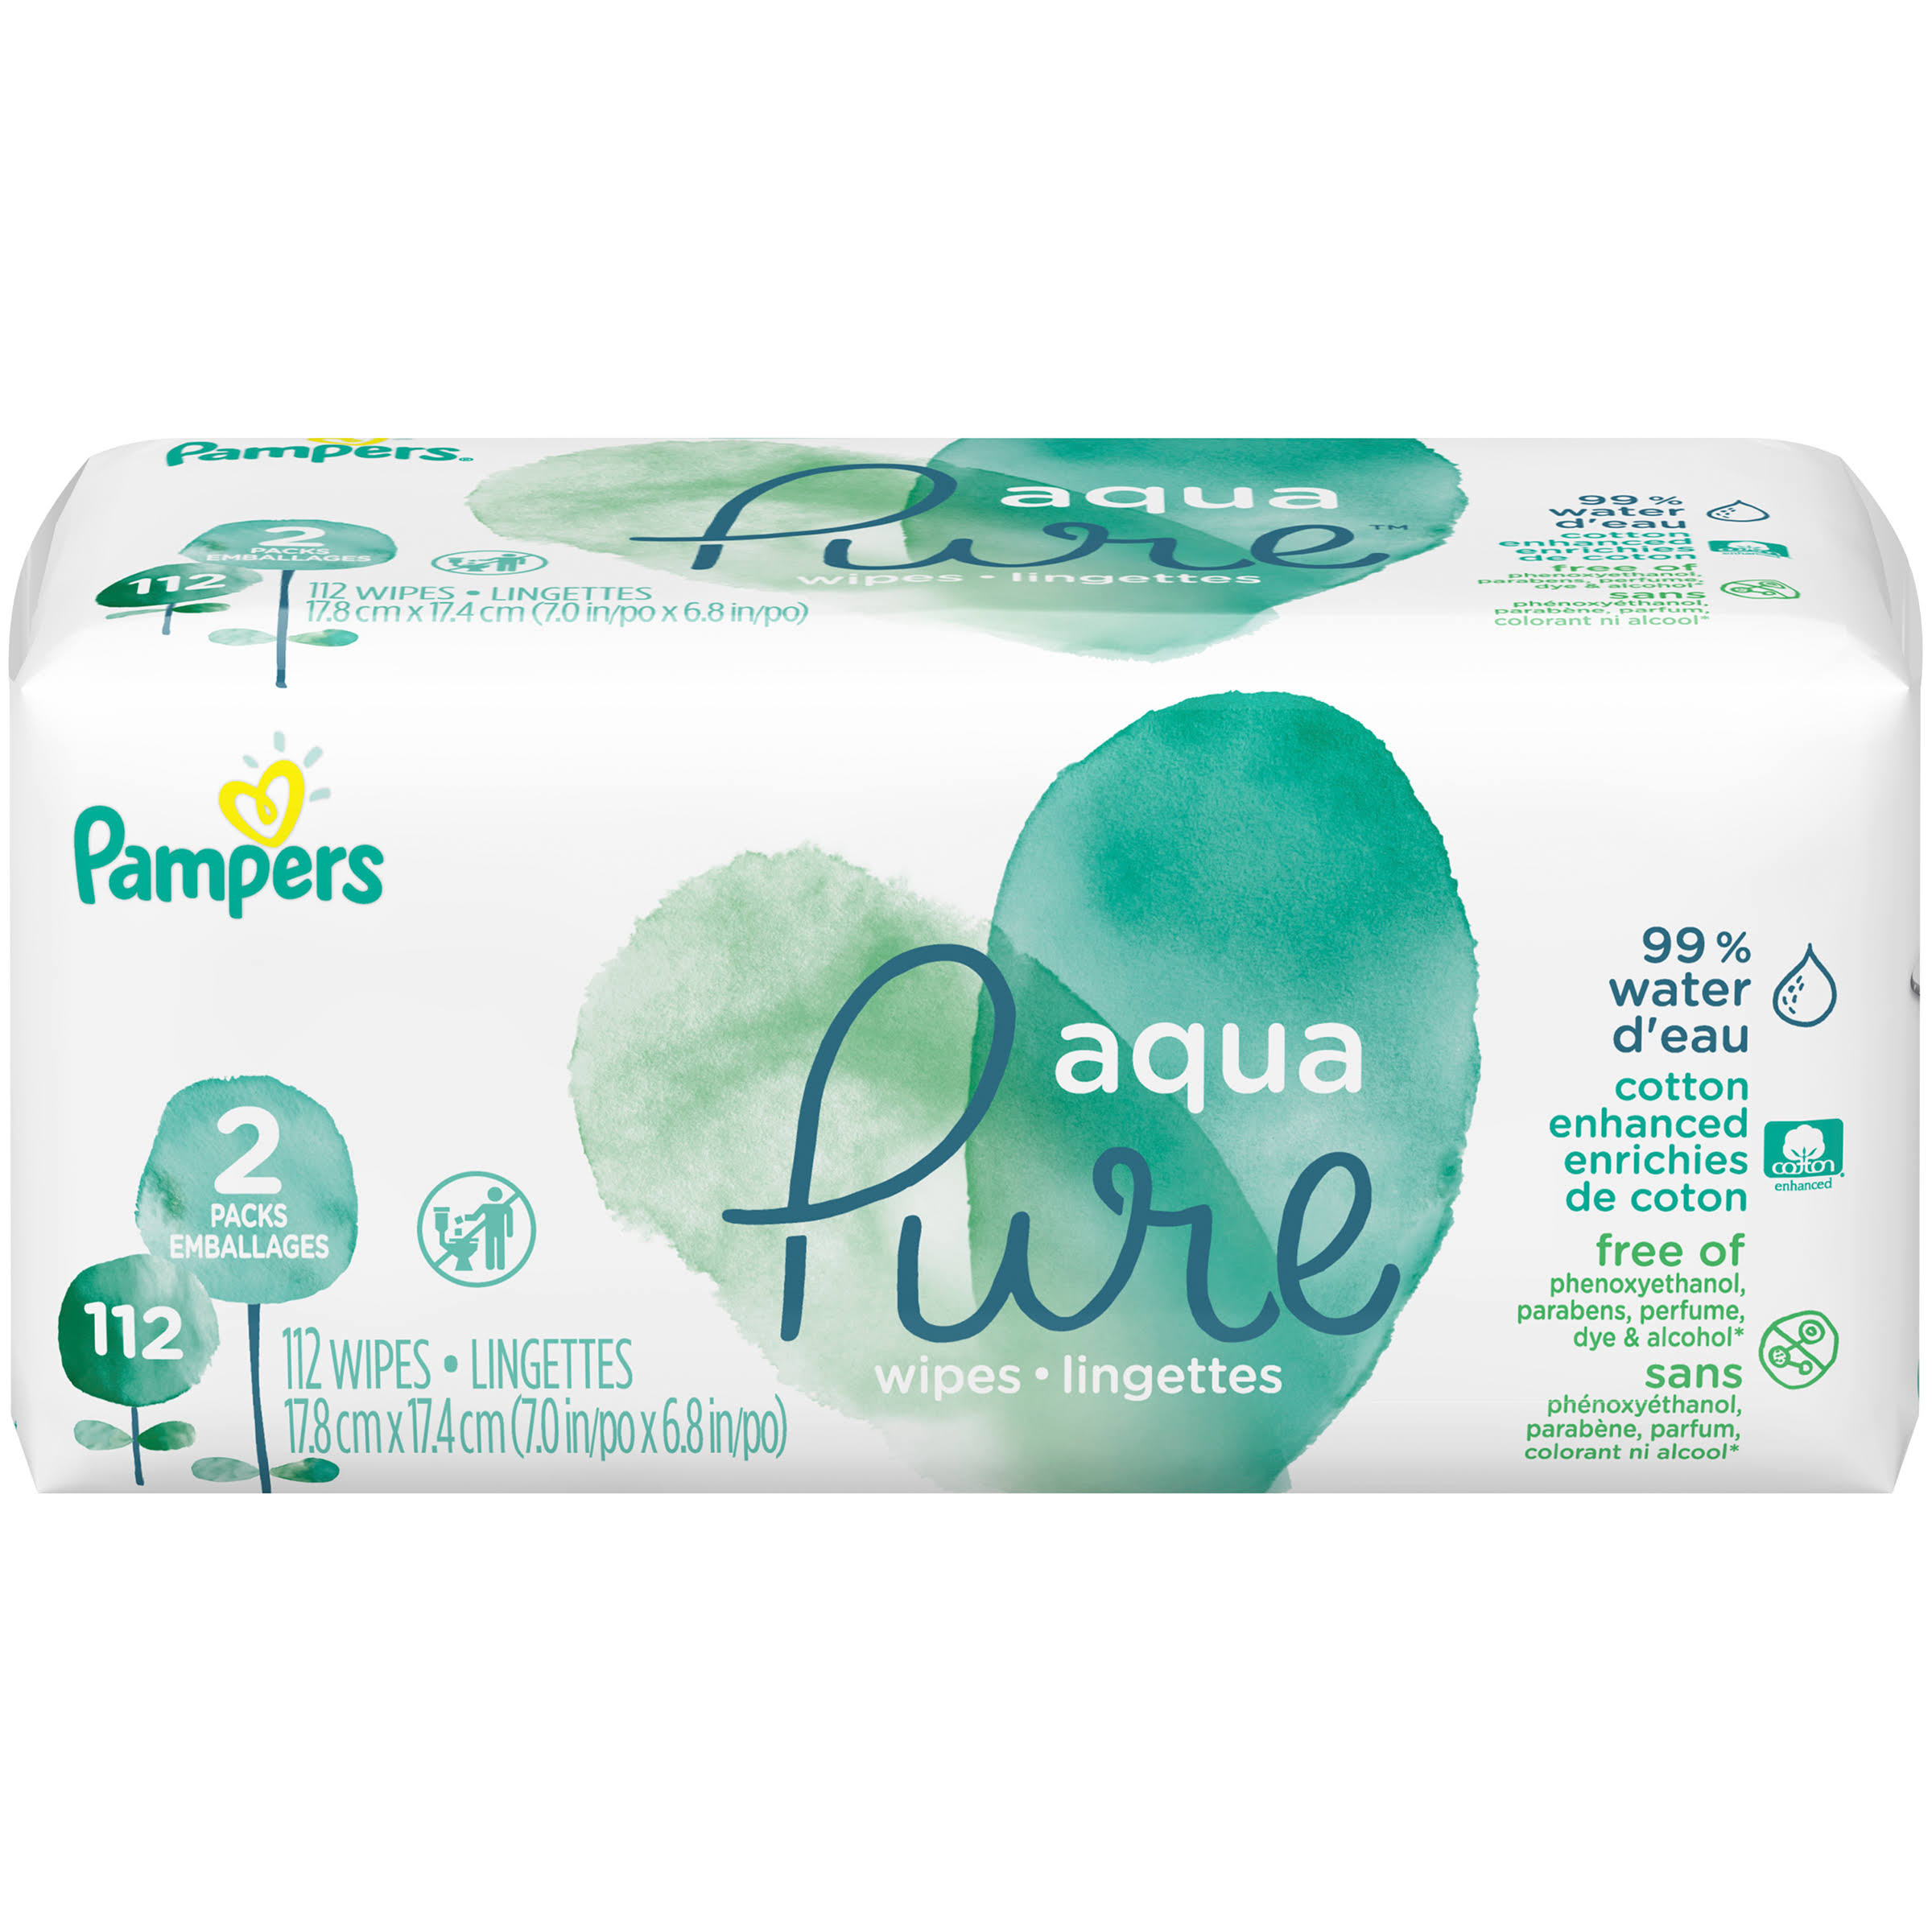 Pampers Aqua Pure Pop-Top Sensitive Baby Wipes - 112pcs